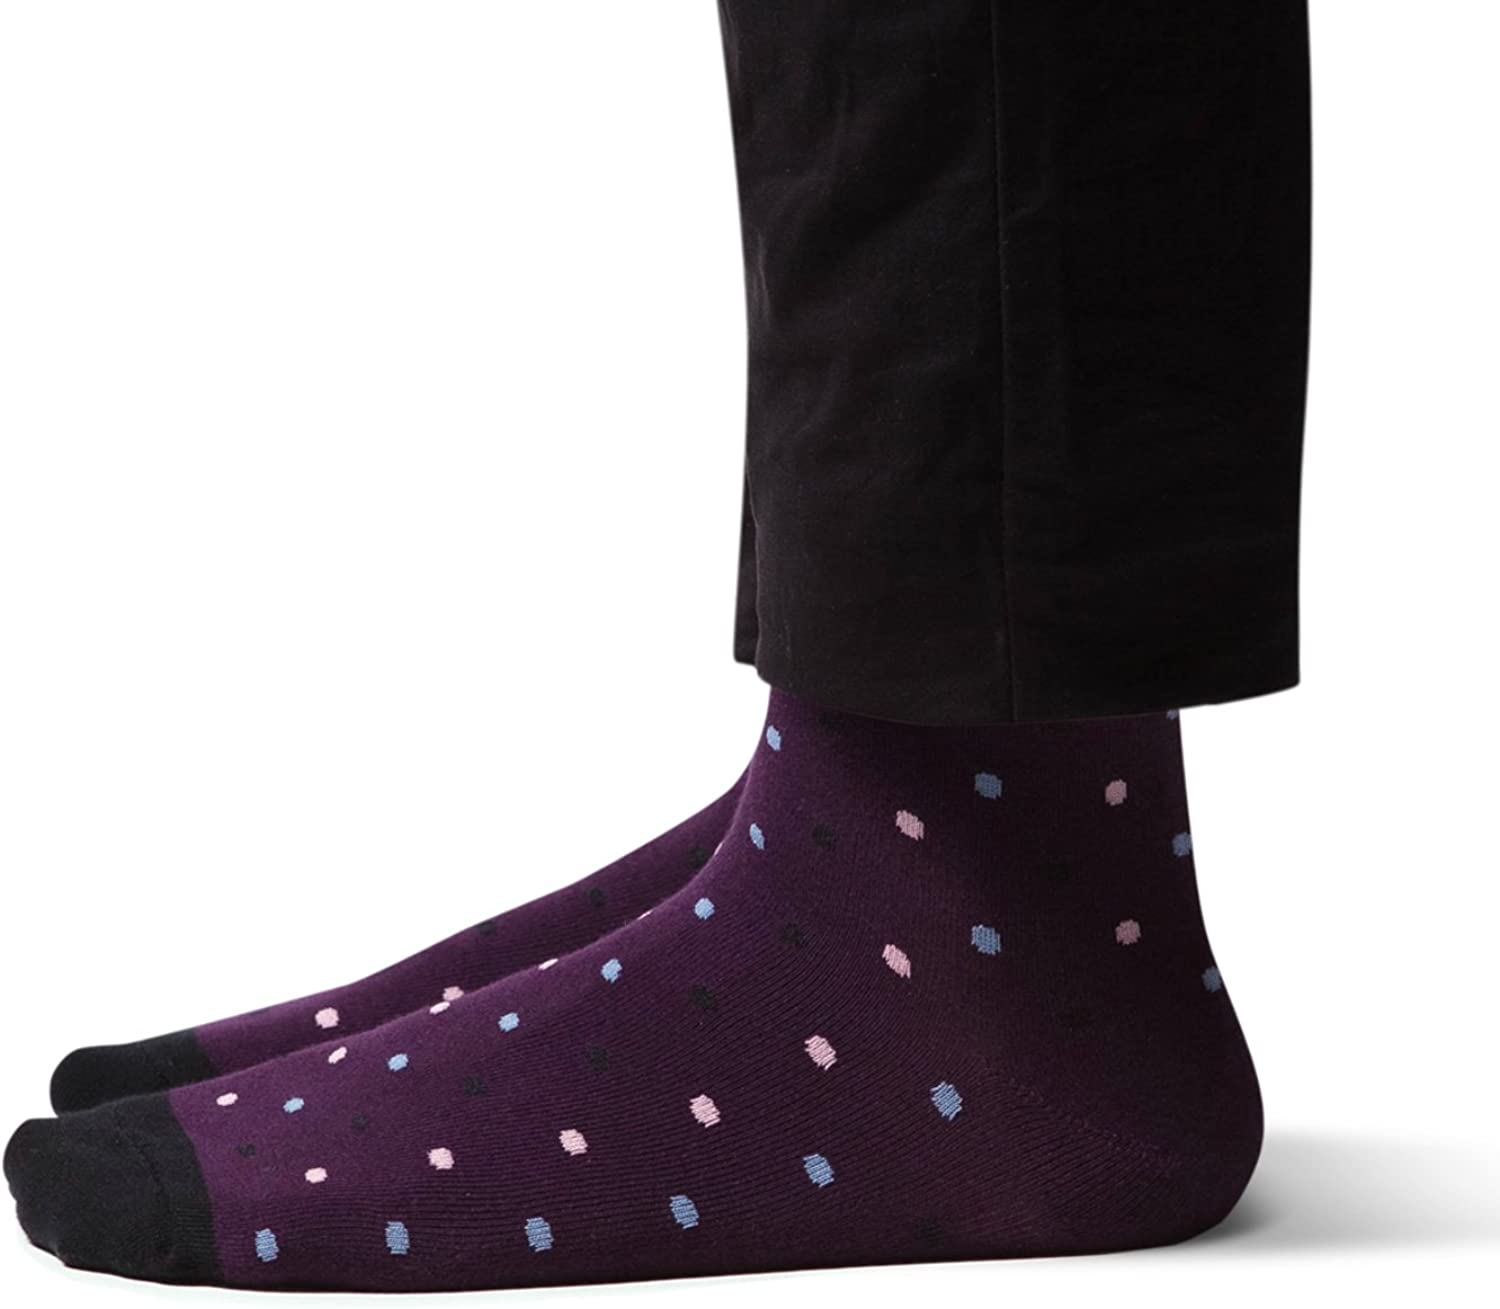 PREMIUM REINFORCED Crew Length Men's Dress Socks - Great for Mardi Gras, Valentine's Day, St. Patrick's Day and more